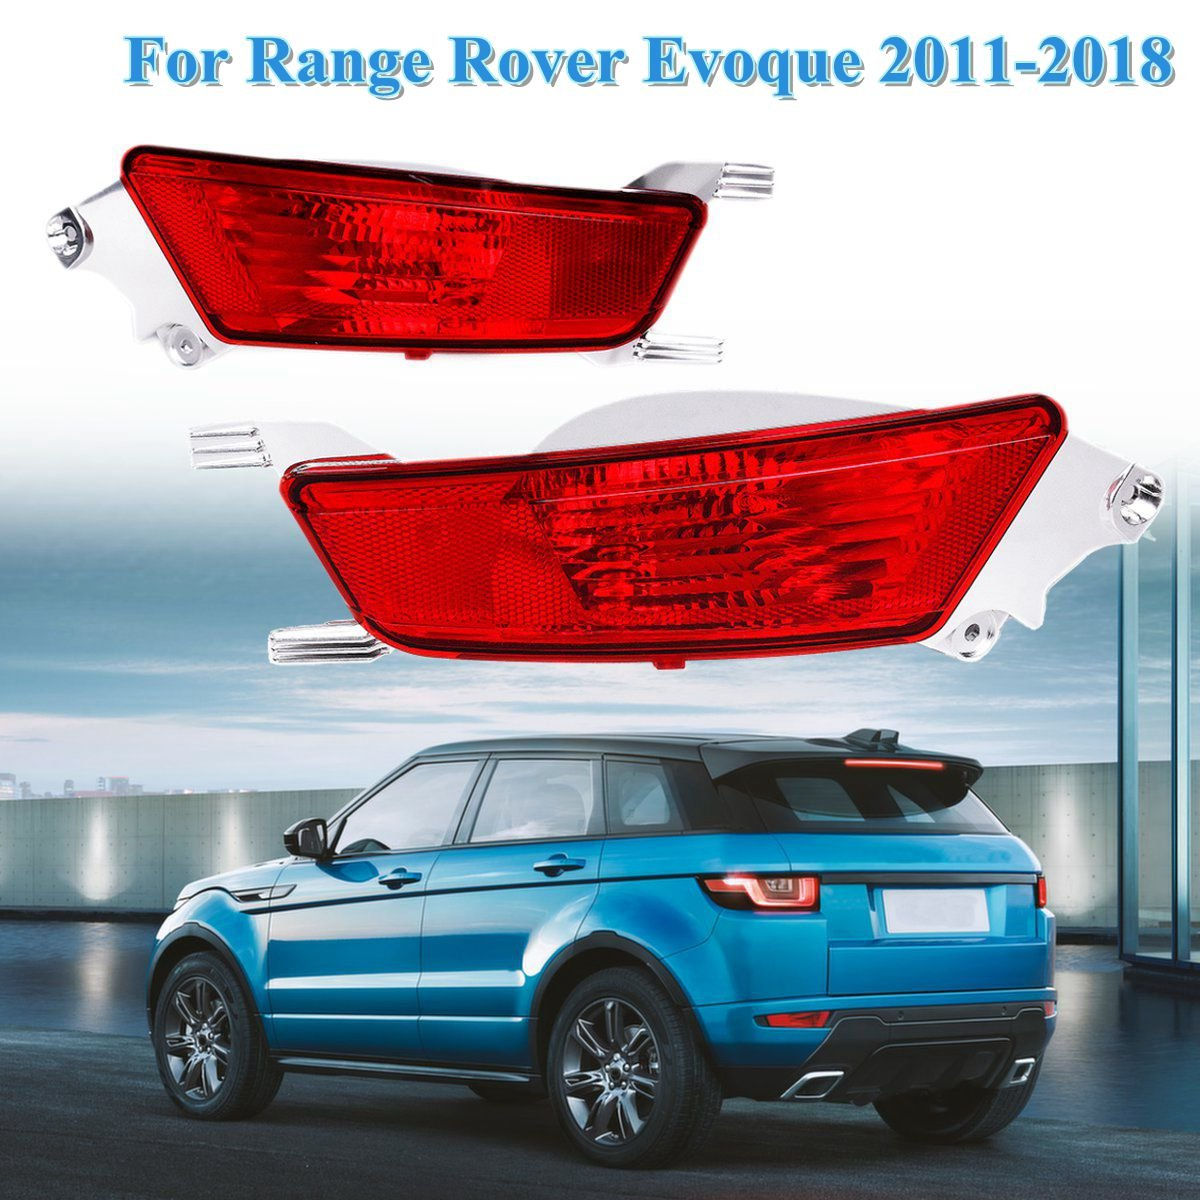 Headlamp Mounting Plate Left Right For 2012-2016 Land Rover Range Rover Evoque